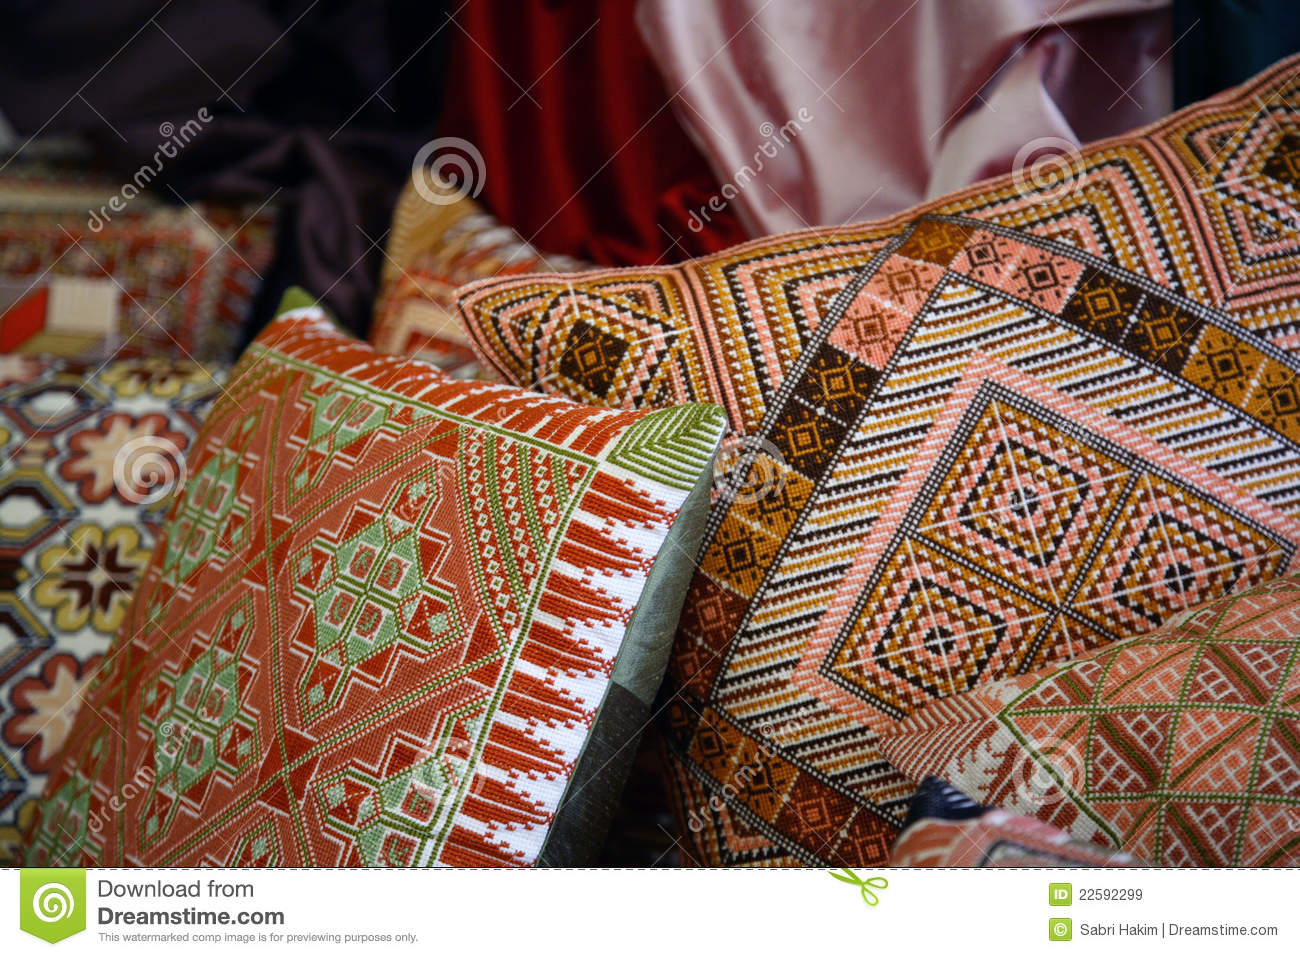 arab arabic bedouin embroidered handmade pillows